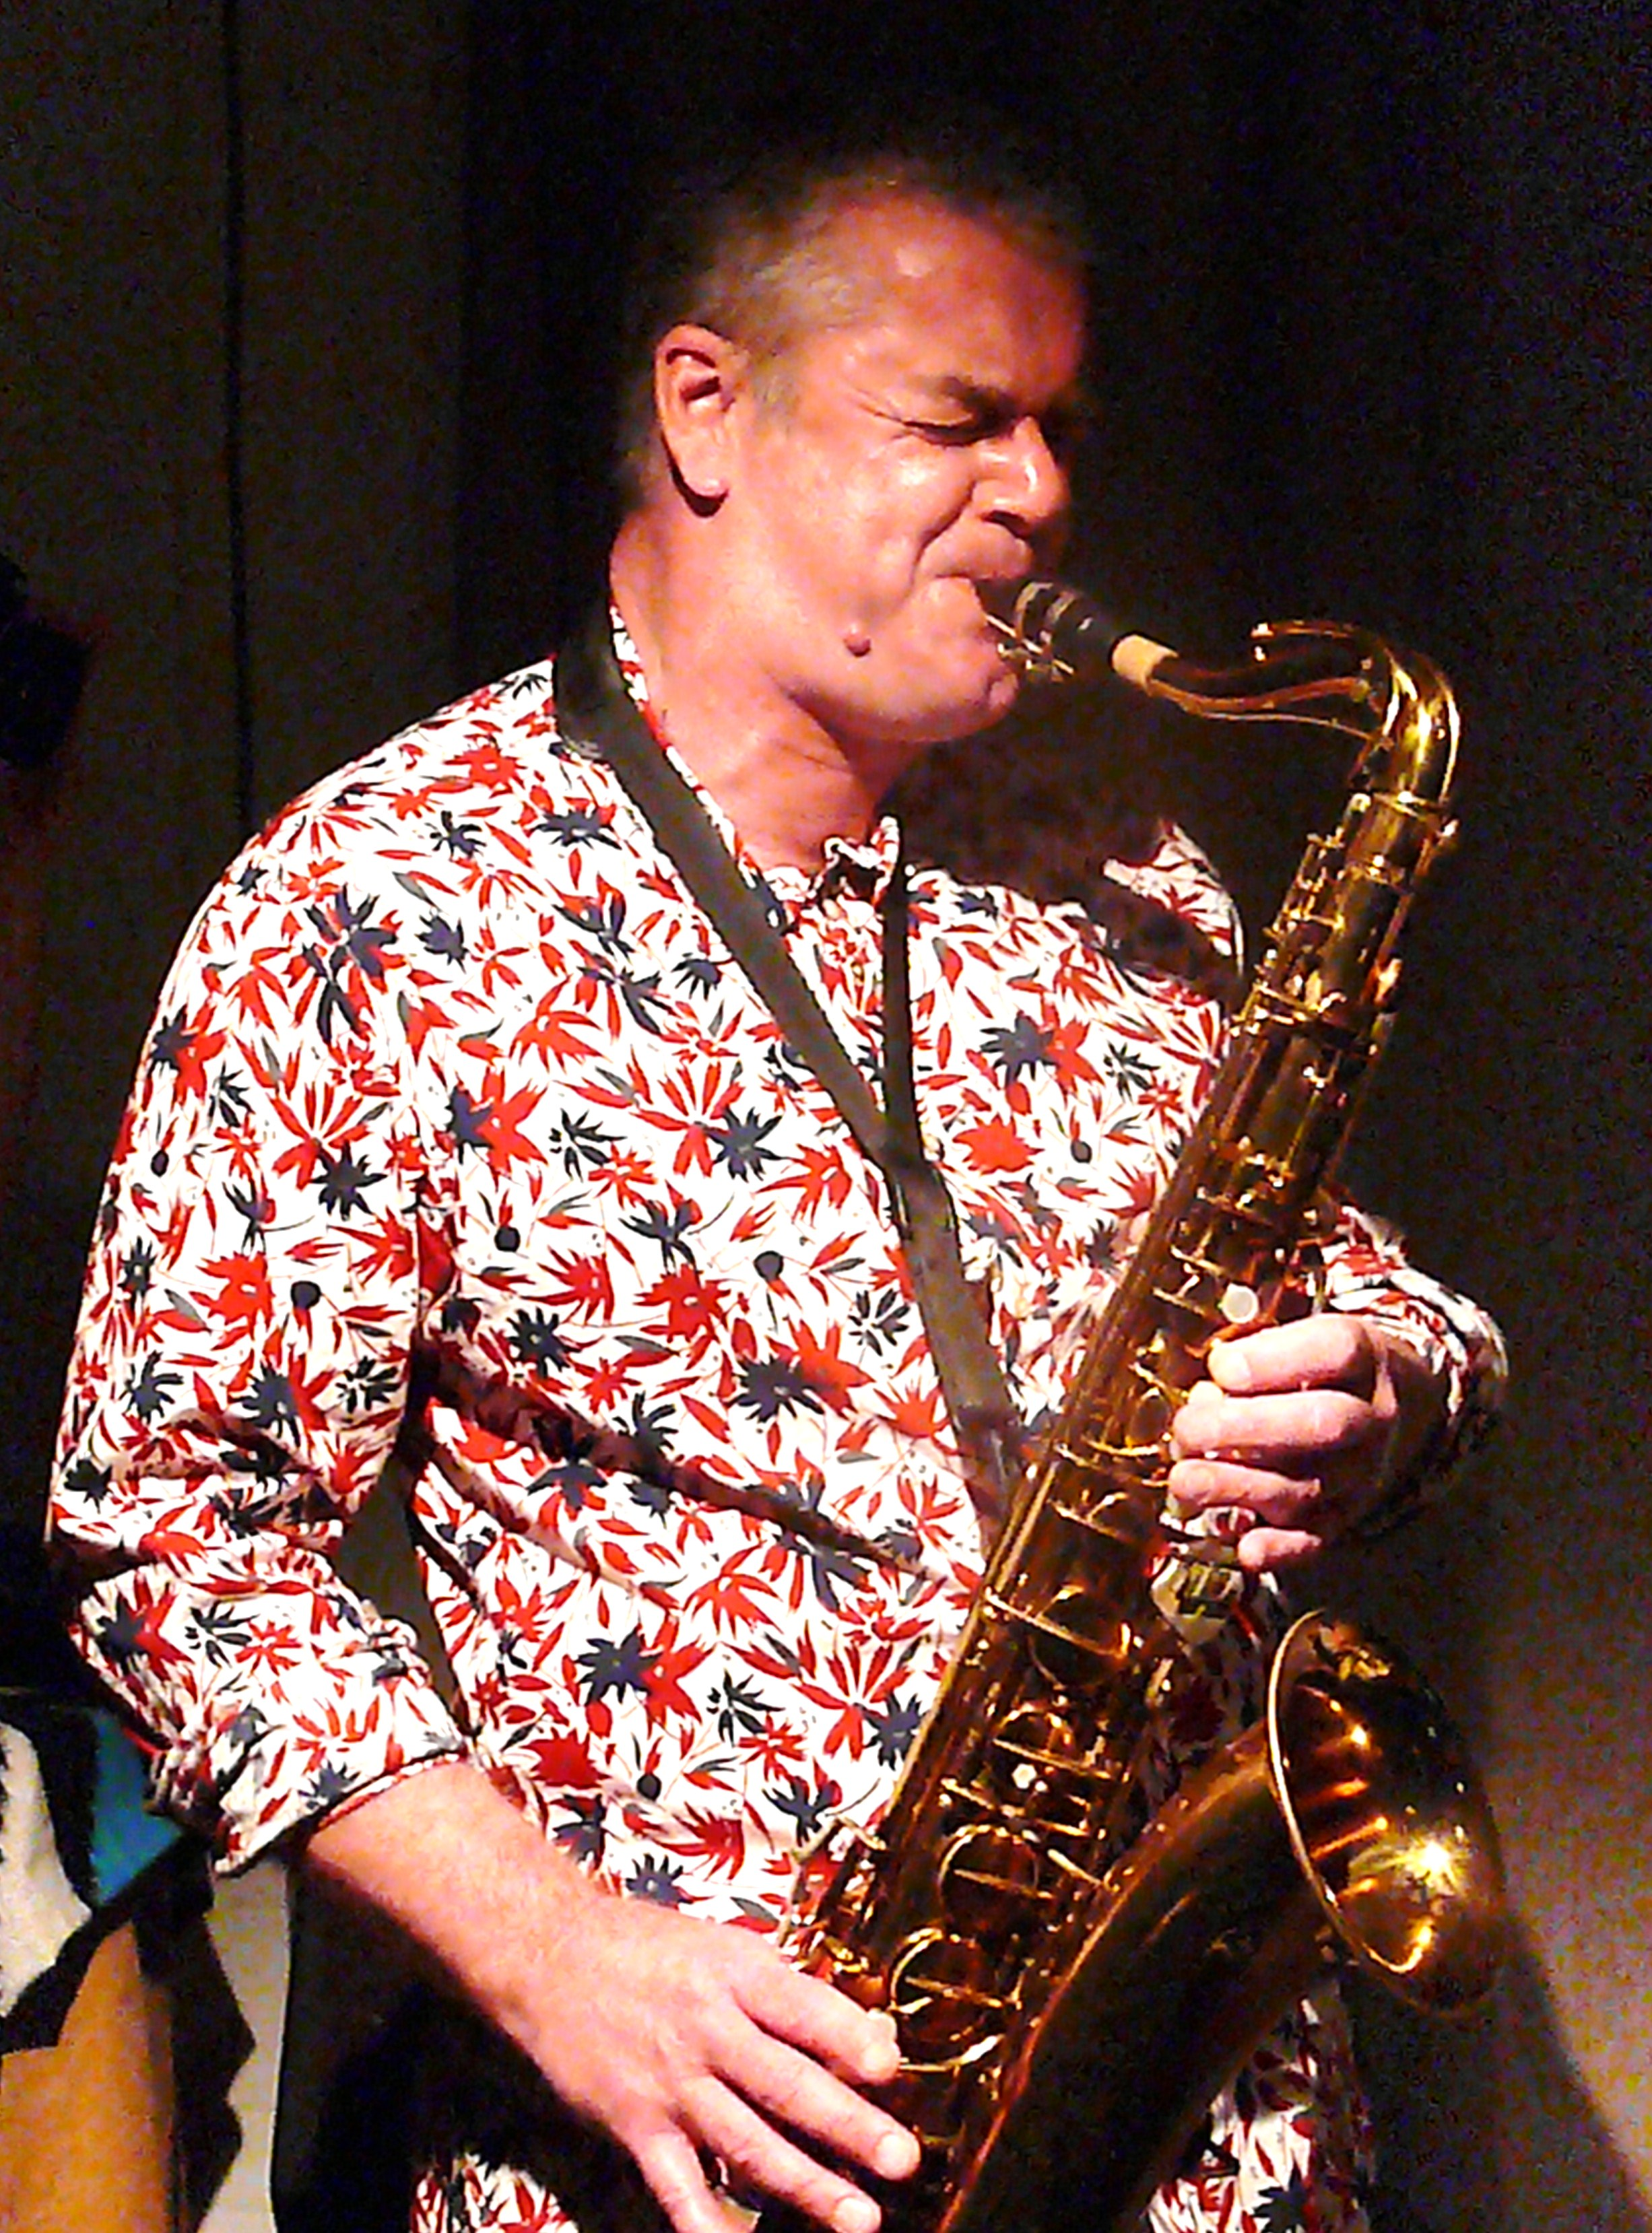 Tony Bevan at Cafe Oto, London in August 2010